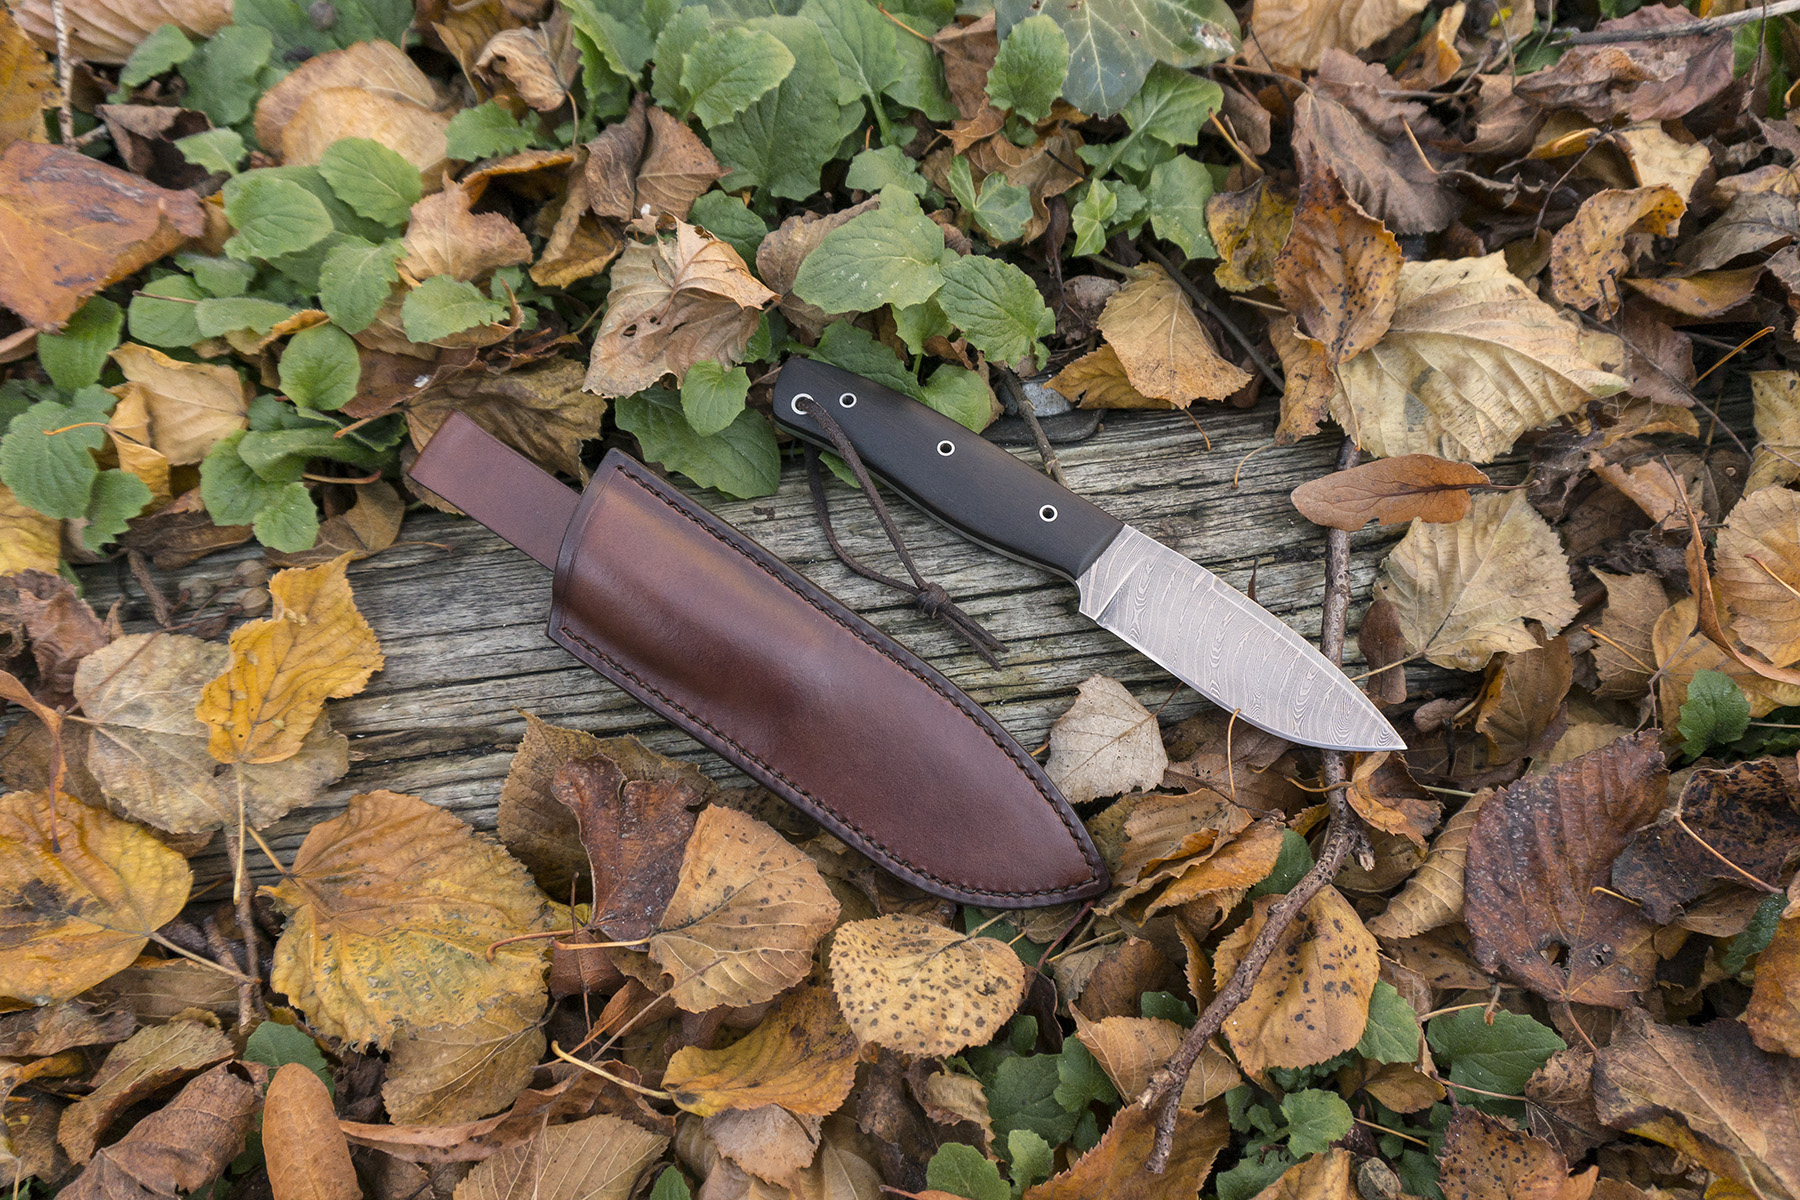 leatherwork leather bushcraft knife scales sheath outdoor camping stitching sewing handmade